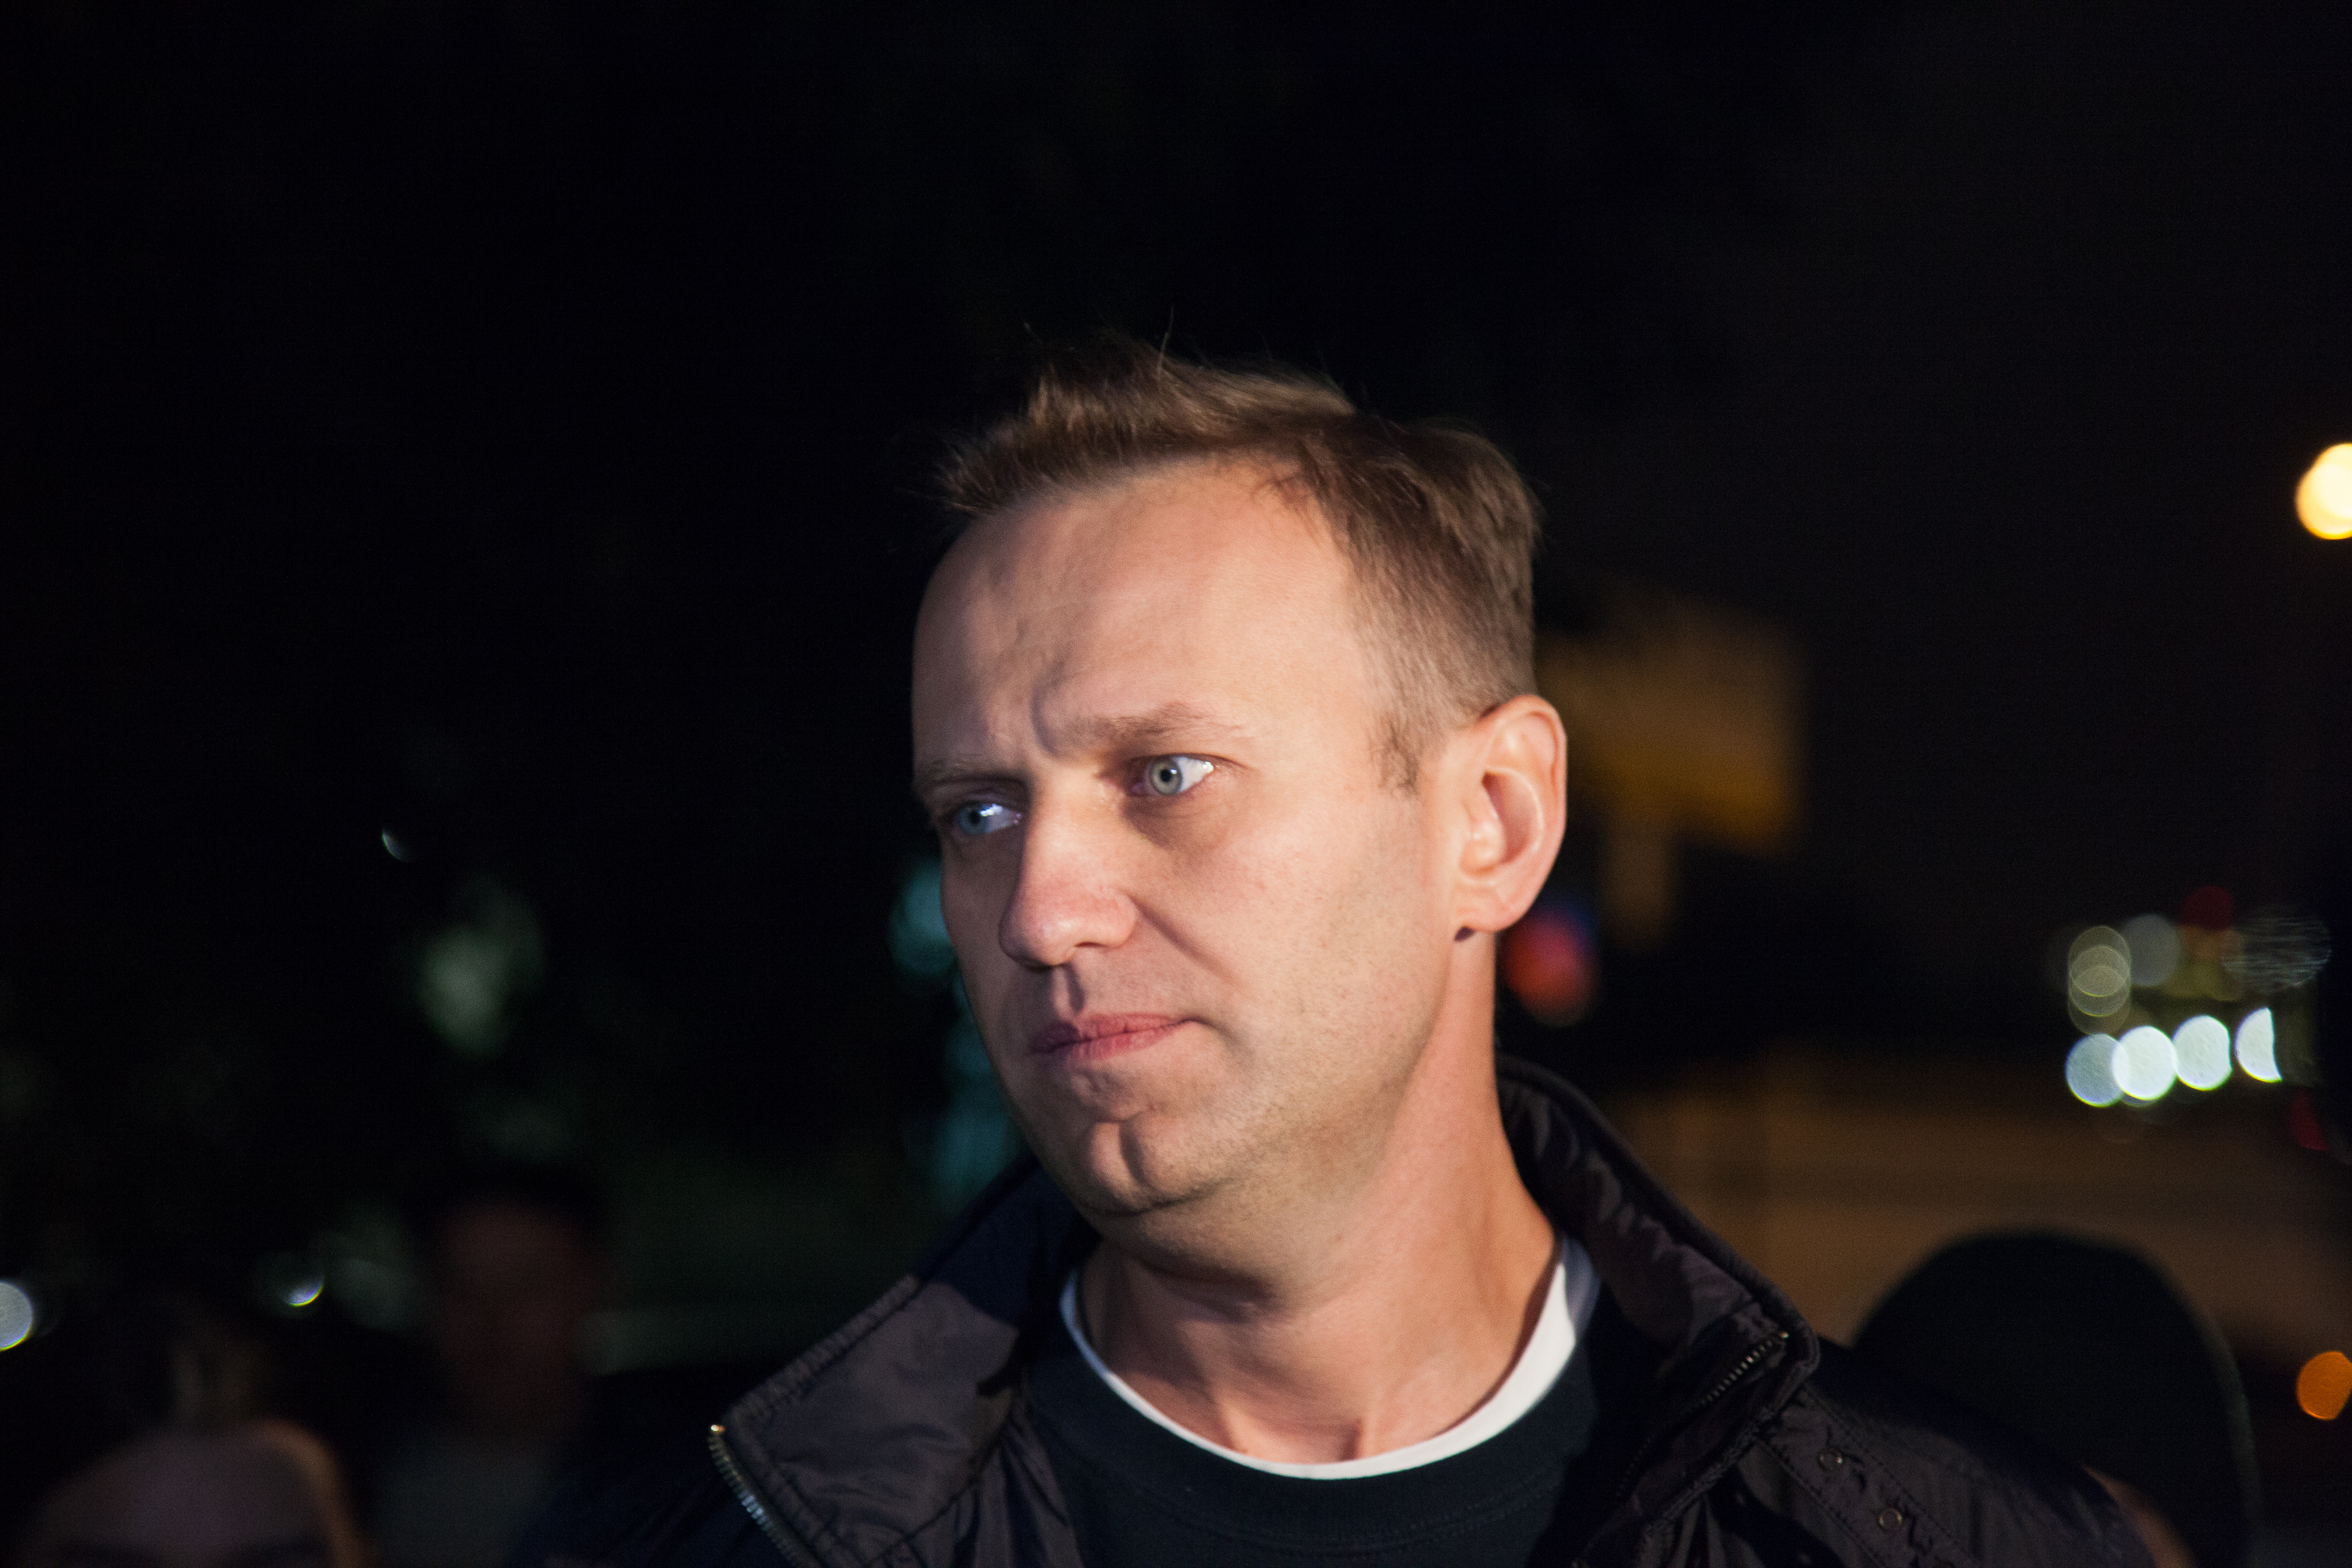 The ECR Group calls for sanctions against Navalny's perpetrators